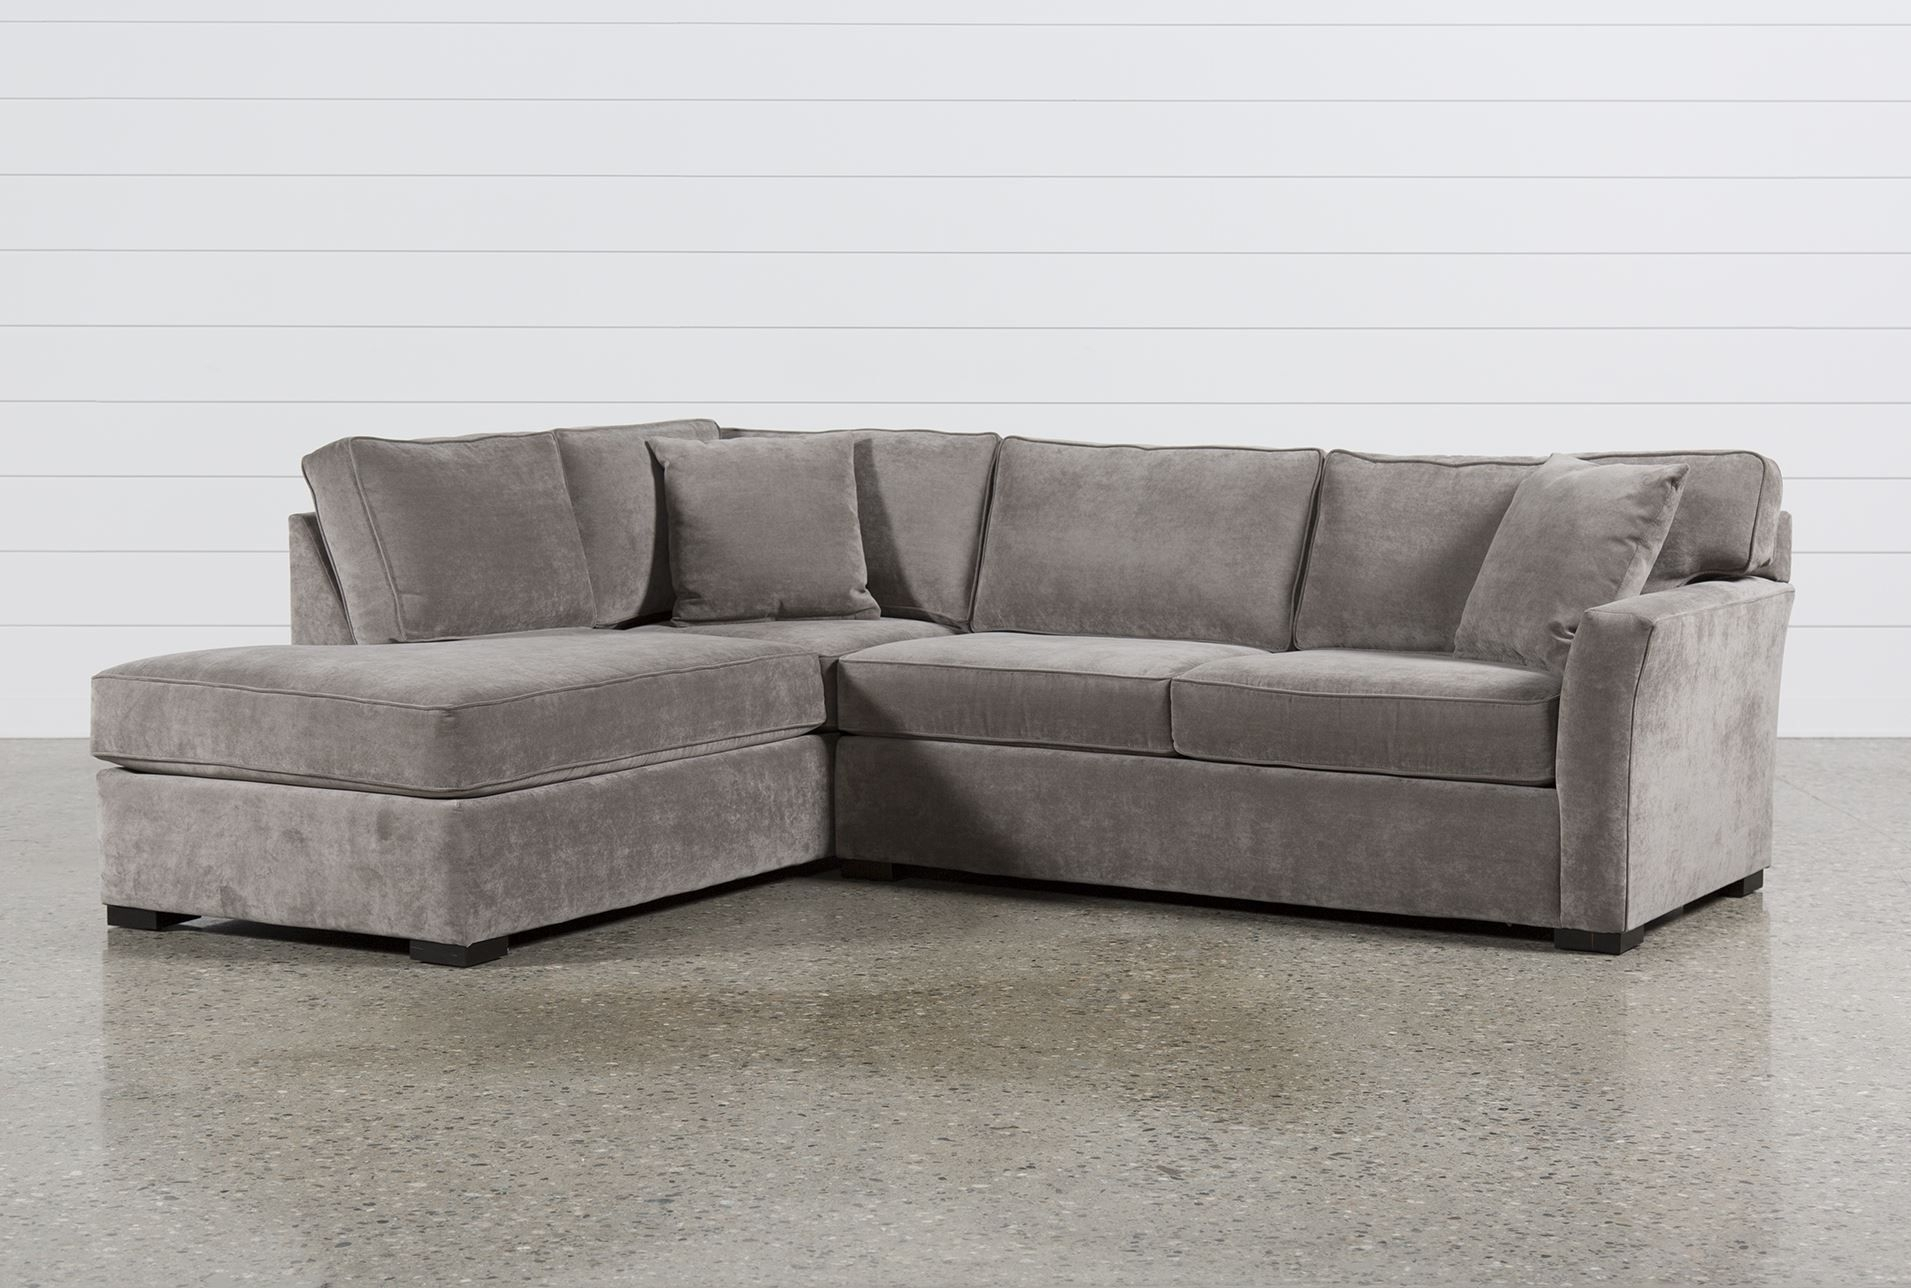 Aspen 2 Piece Sectional W/laf Chaise, Grey, Sofas | Aspen And Apartments In Avery 2 Piece Sectionals With Raf Armless Chaise (Image 4 of 25)